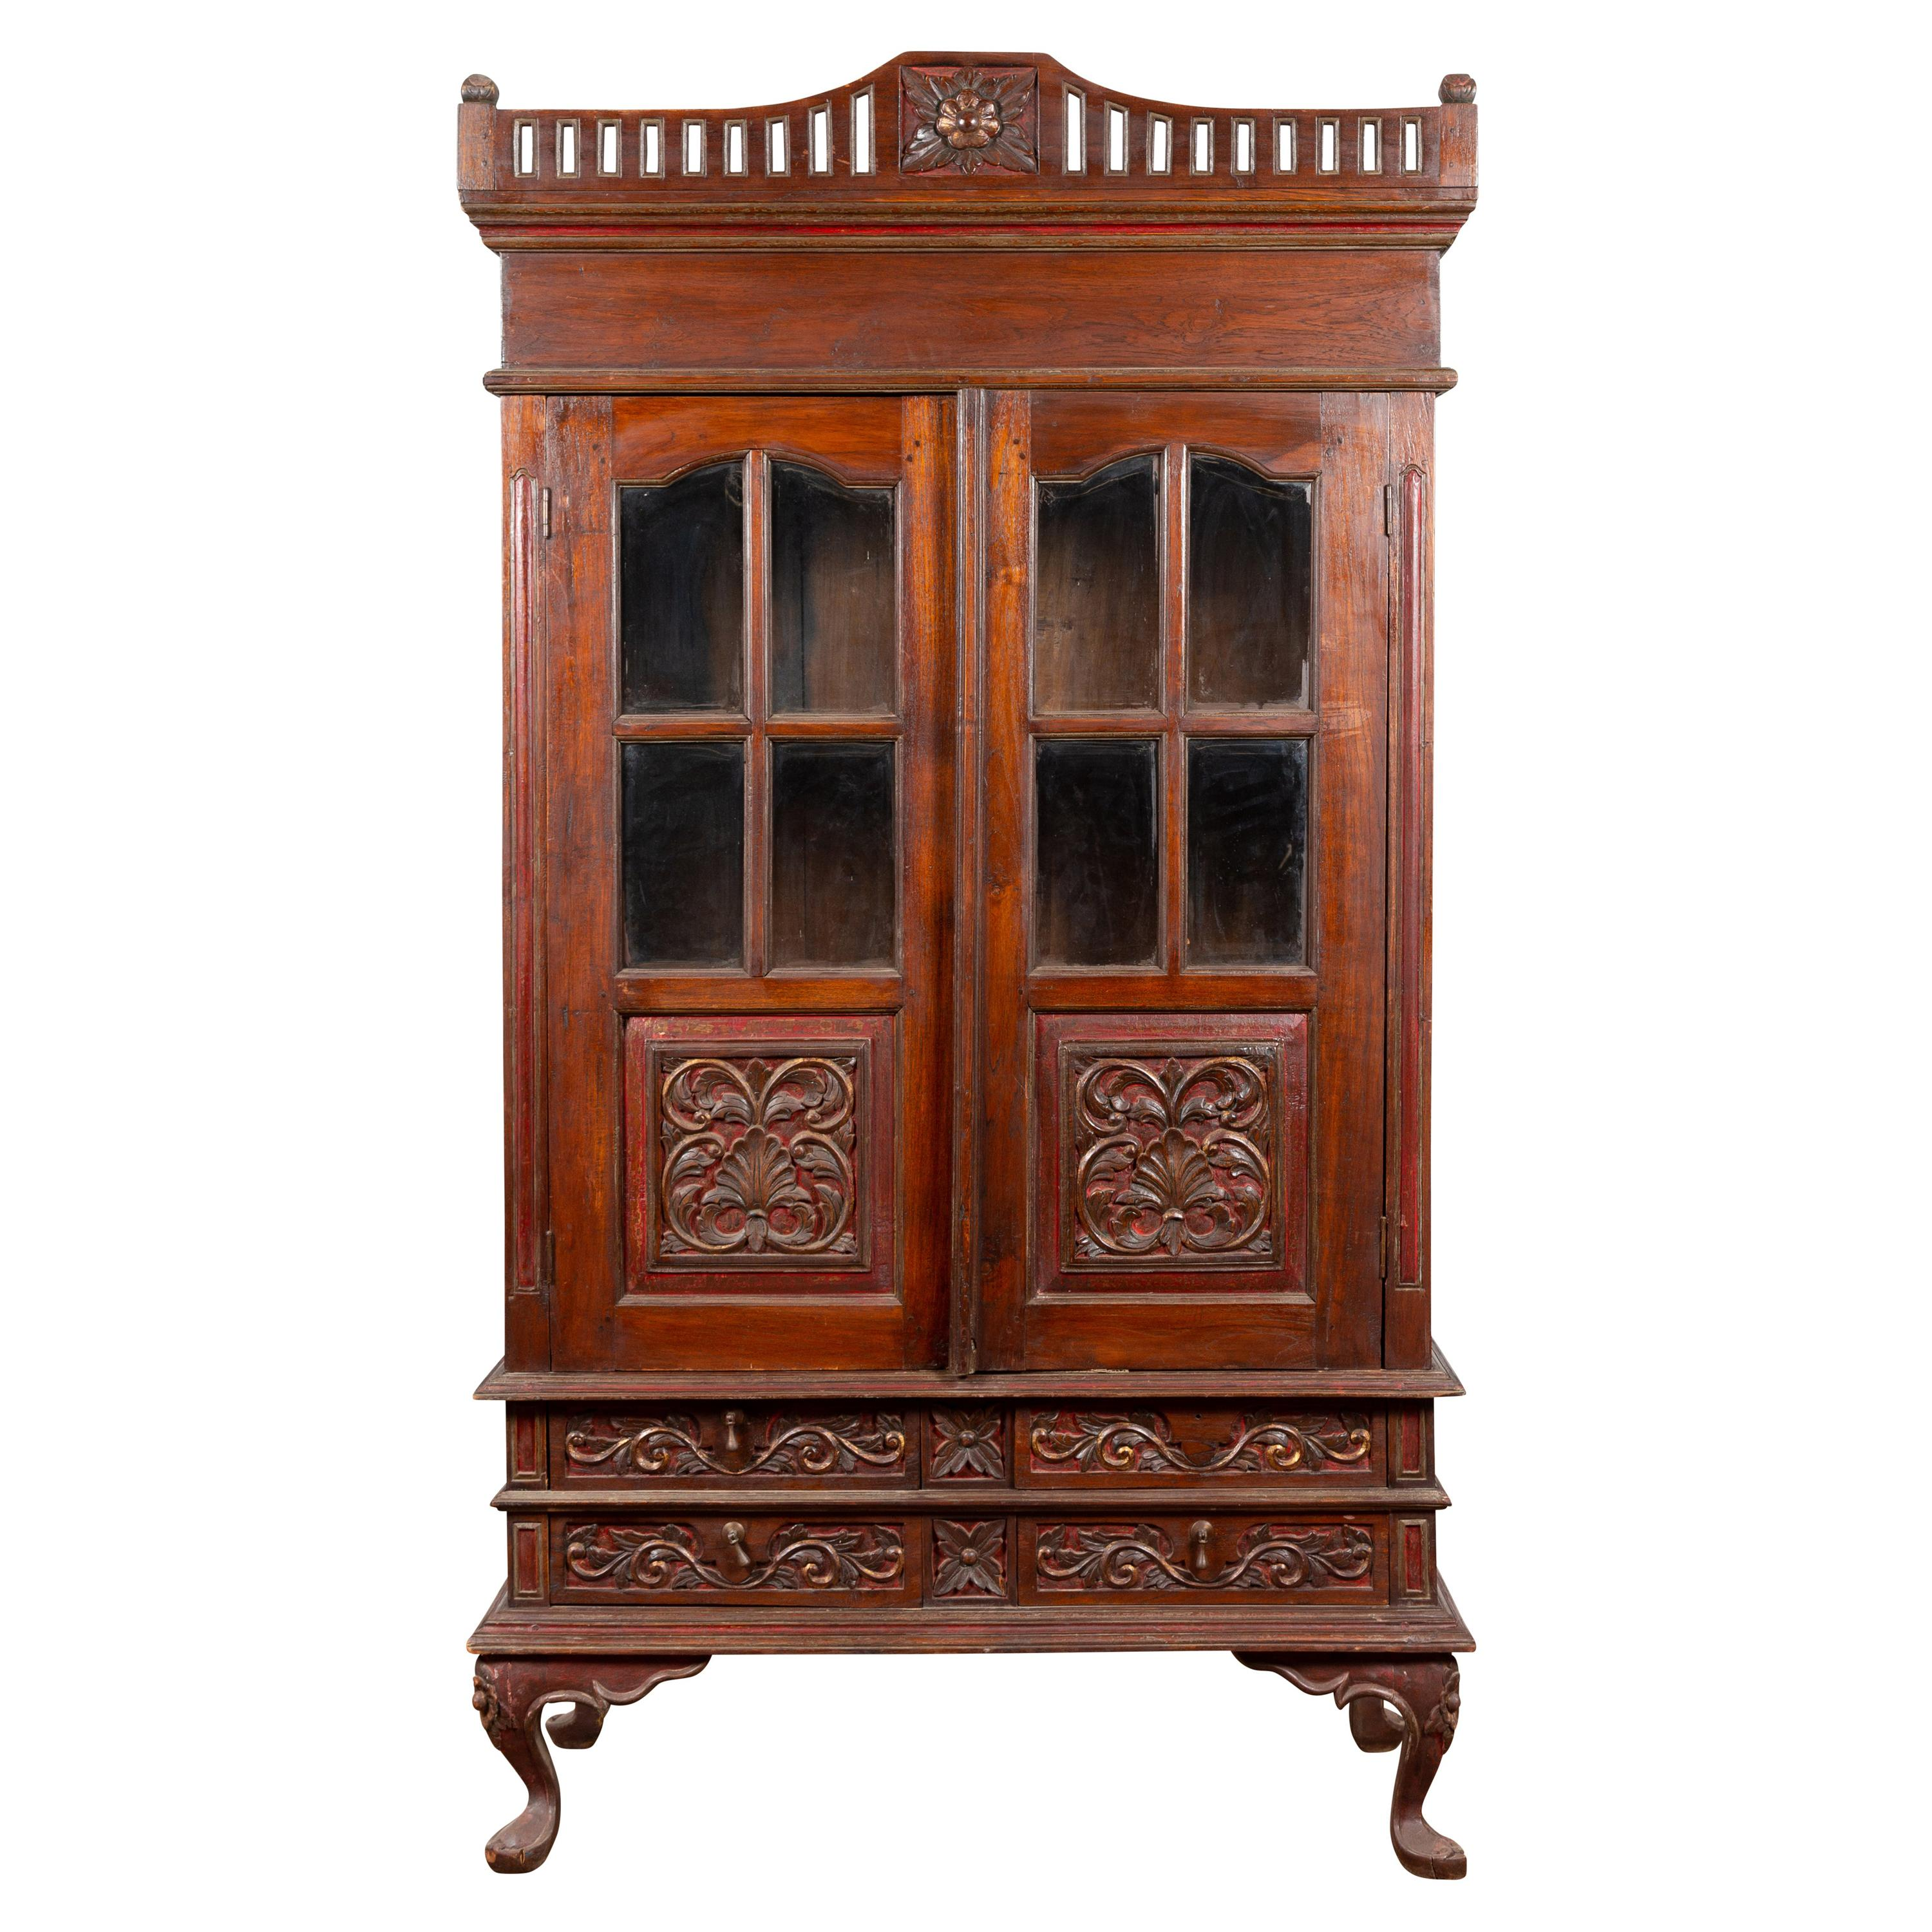 Dutch Colonial Early 20th Century Indonesian Display Cabinet with Carved Motifs